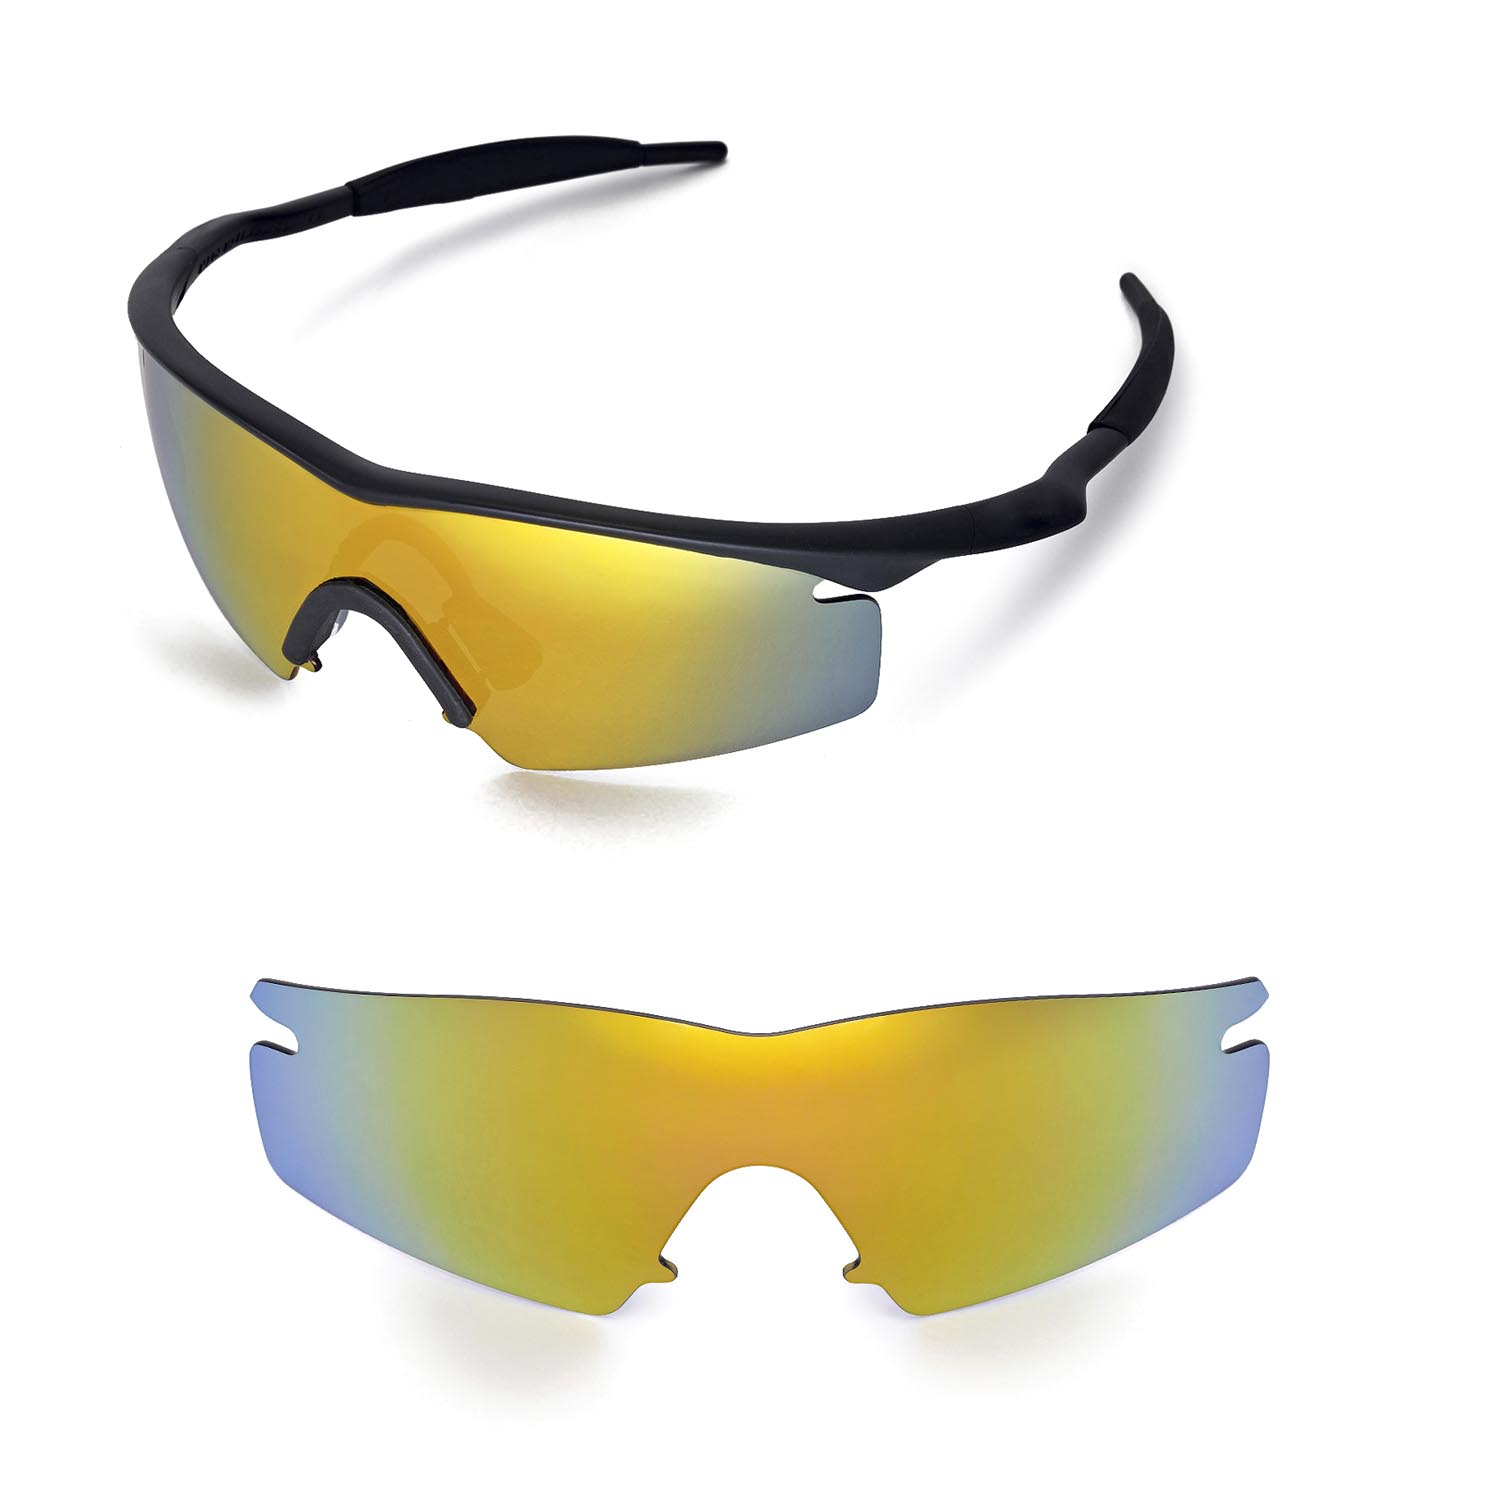 4dfd37a068 Details about WL Polarized 24K Gold Replacement Lenses For Oakley M Frame  Strike Sunglasses